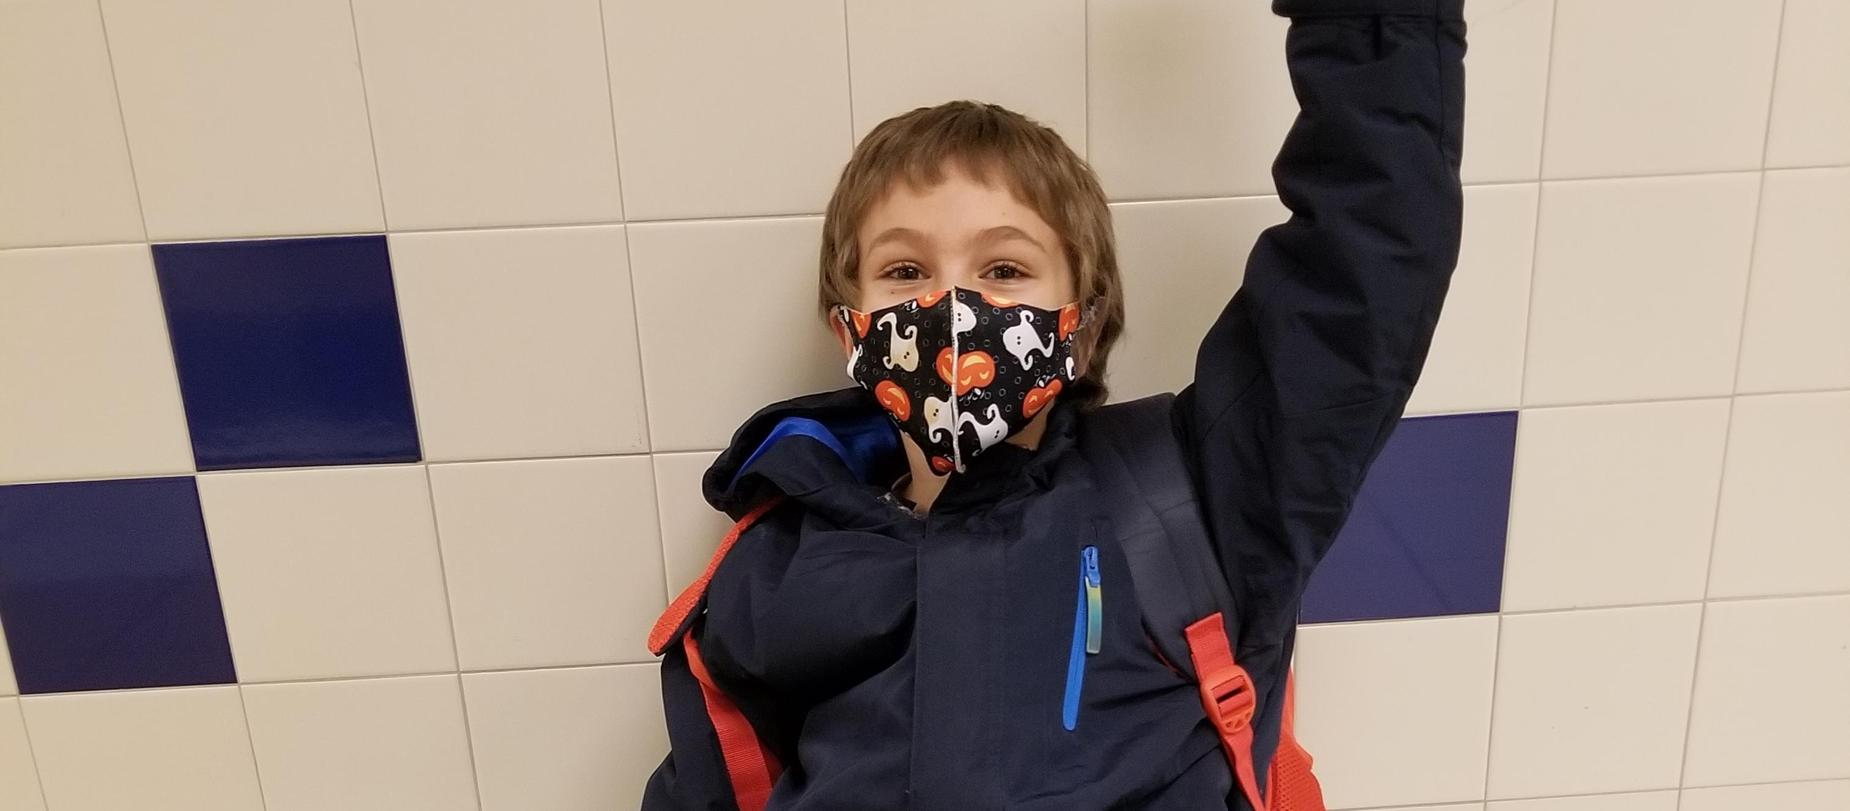 boy sitting on the floor wearing a mask